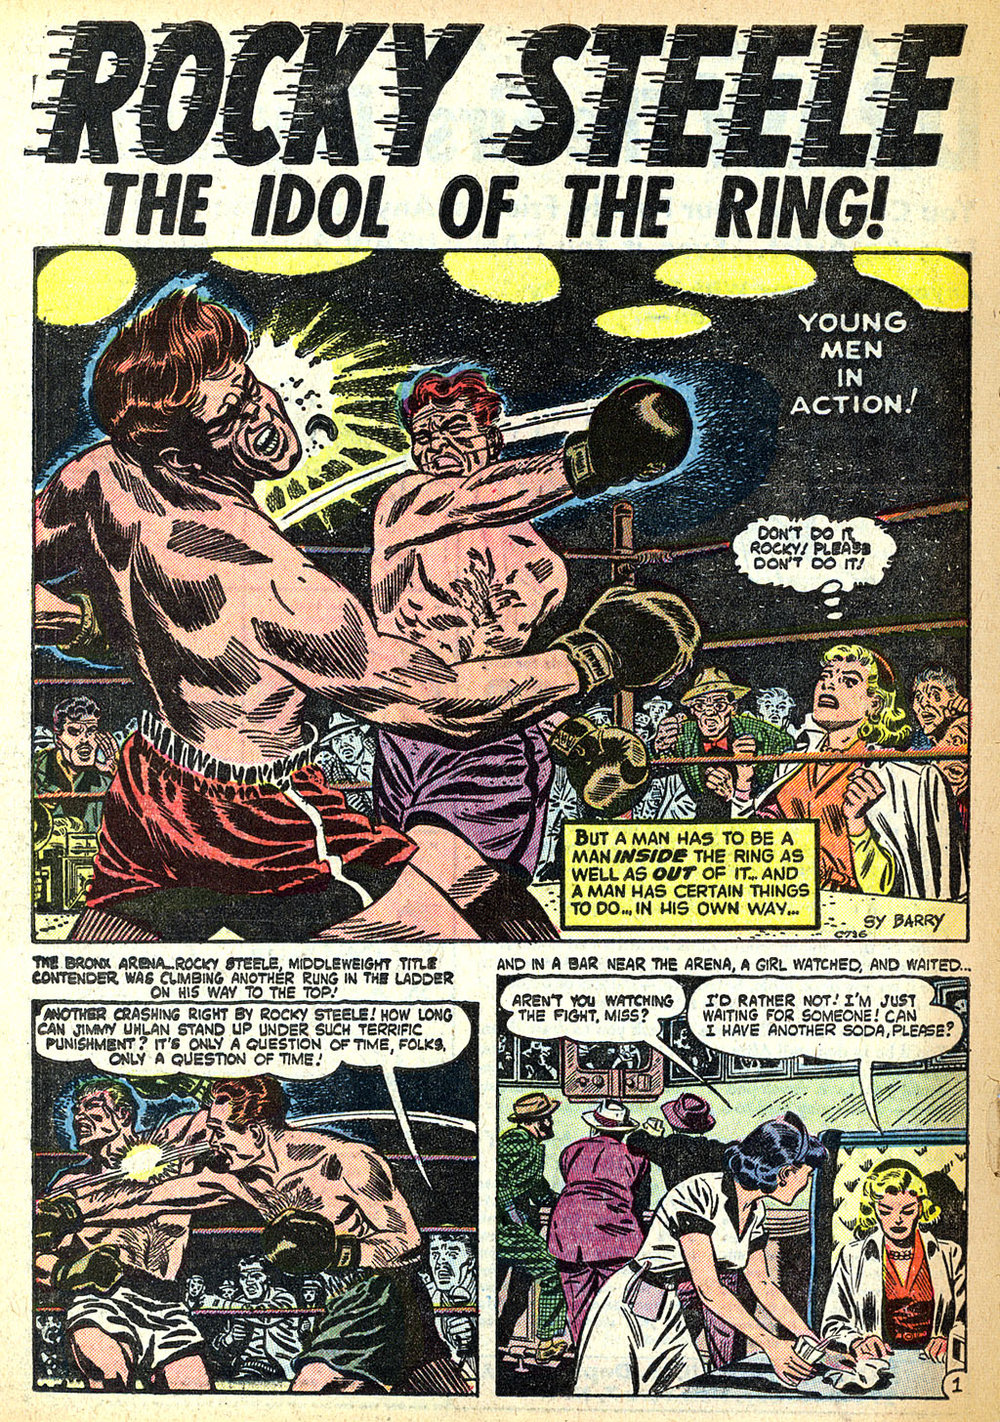 Young Men (1950) #22 pg20, art by Sy Barry.